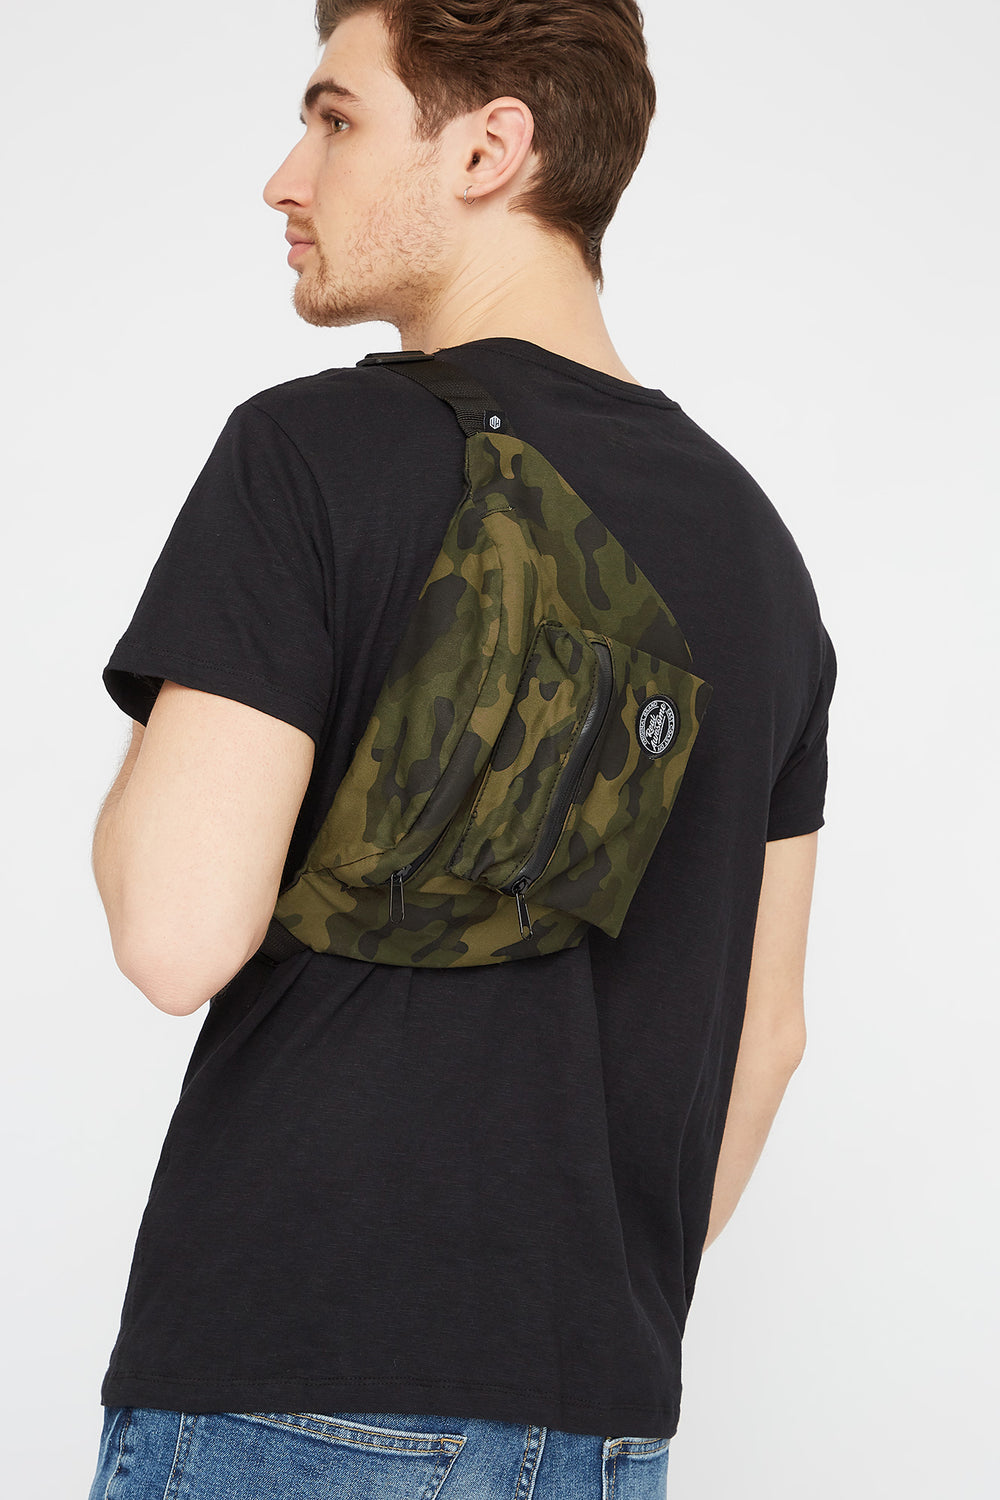 Real Awesome Graphic Camo Fanny Pack Camouflage